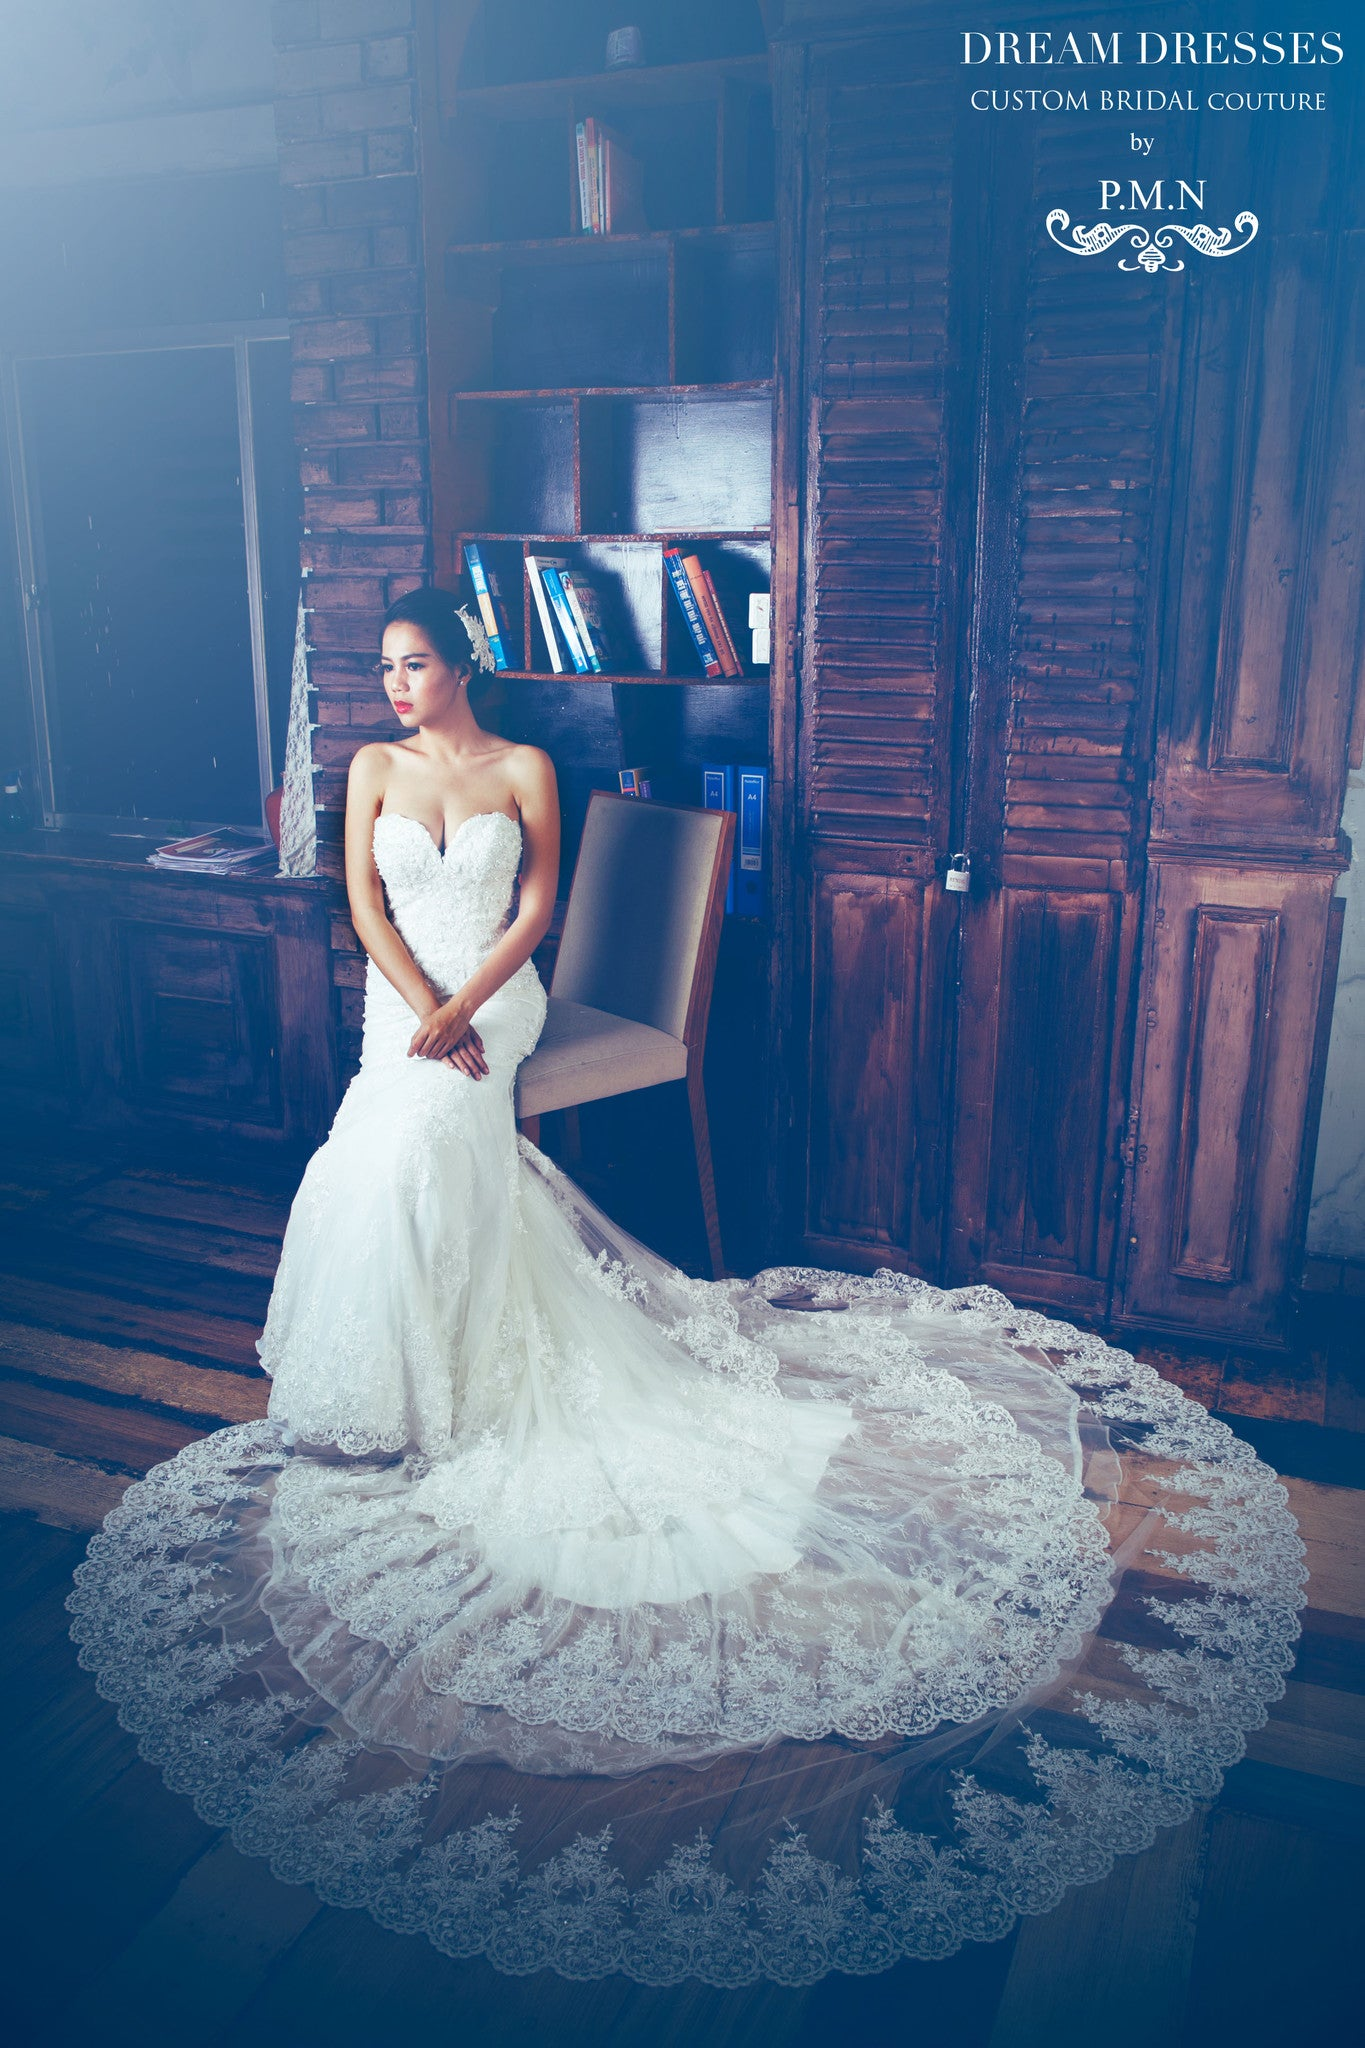 SAMPLE SALE/ Sweetheart Strapless Wedding Dress with Three Layer Long Train (# PB094) - Dream Dresses by P.M.N  - 5